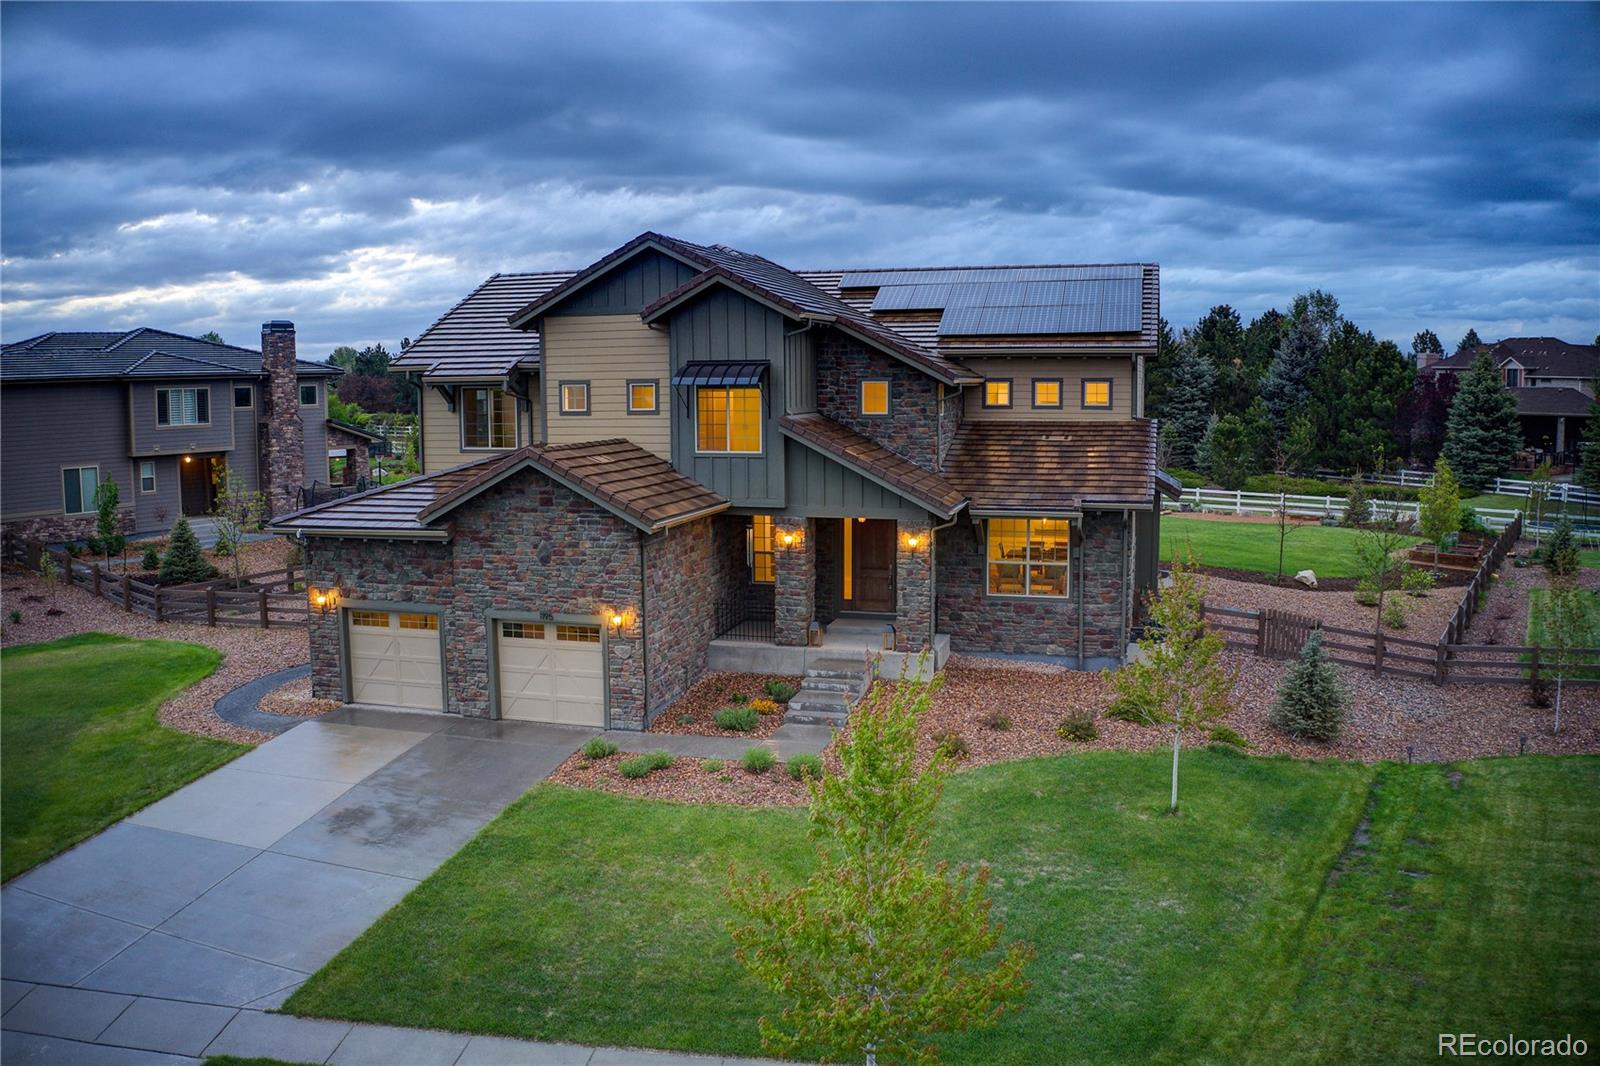 1195 Maddox Court, Broomfield, CO 80023 - Broomfield, CO real estate listing